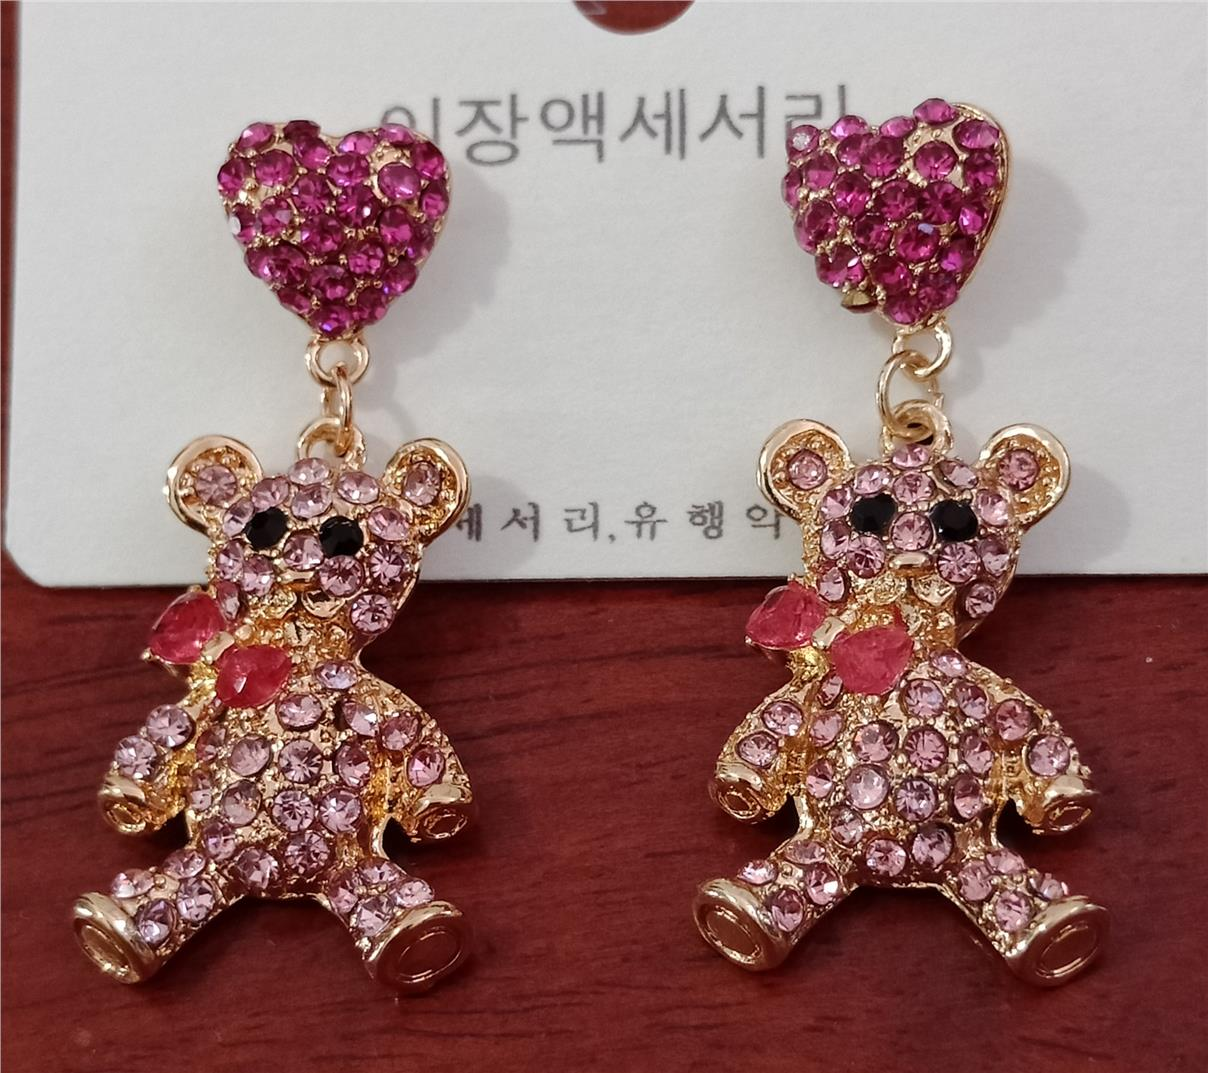 Fashion ear ring - teddy bear